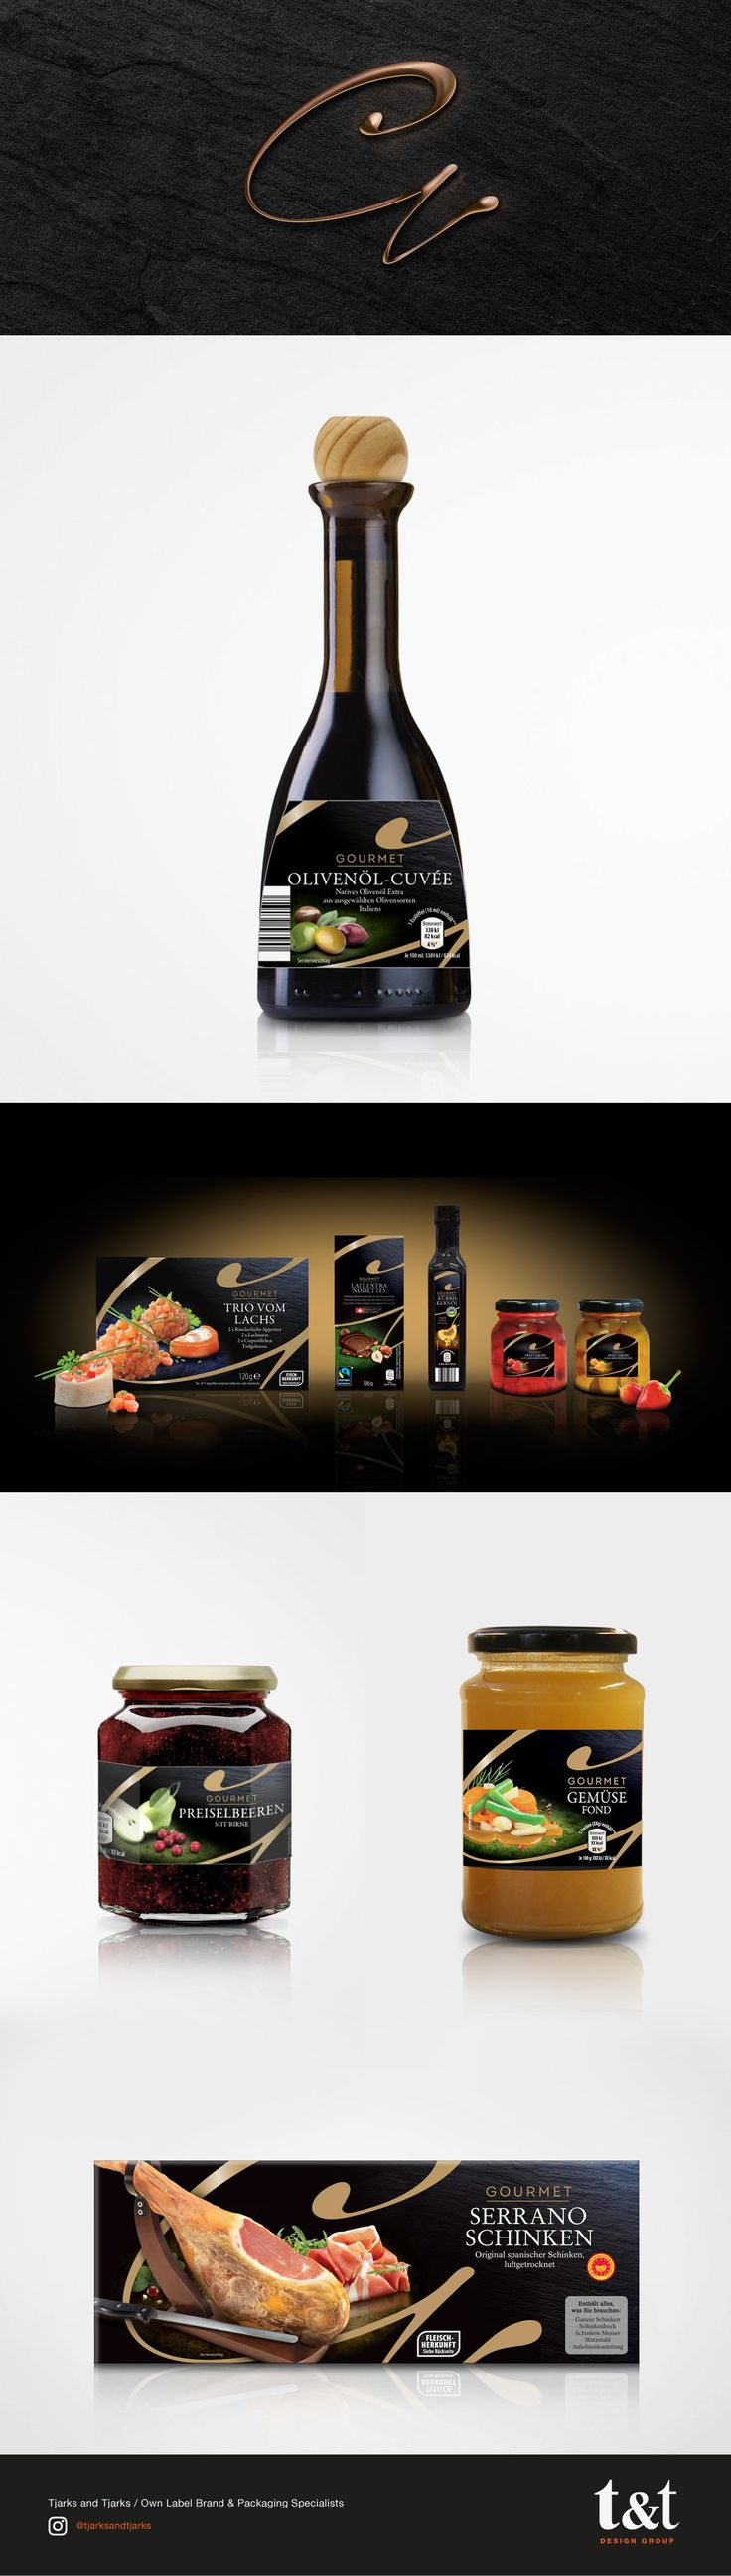 Gourmet Premium Packaging Design - Having created the original Gourmet range for ALDI SÜD many years ago, we were commissioned to update the successful range with a modern, iconic, new look. We created a distinctive logo and packaging concepts for this extensive, premium-priced product range. The design had to convey the outstanding quality of the products whilst differentiating itself from everything else on the European market.